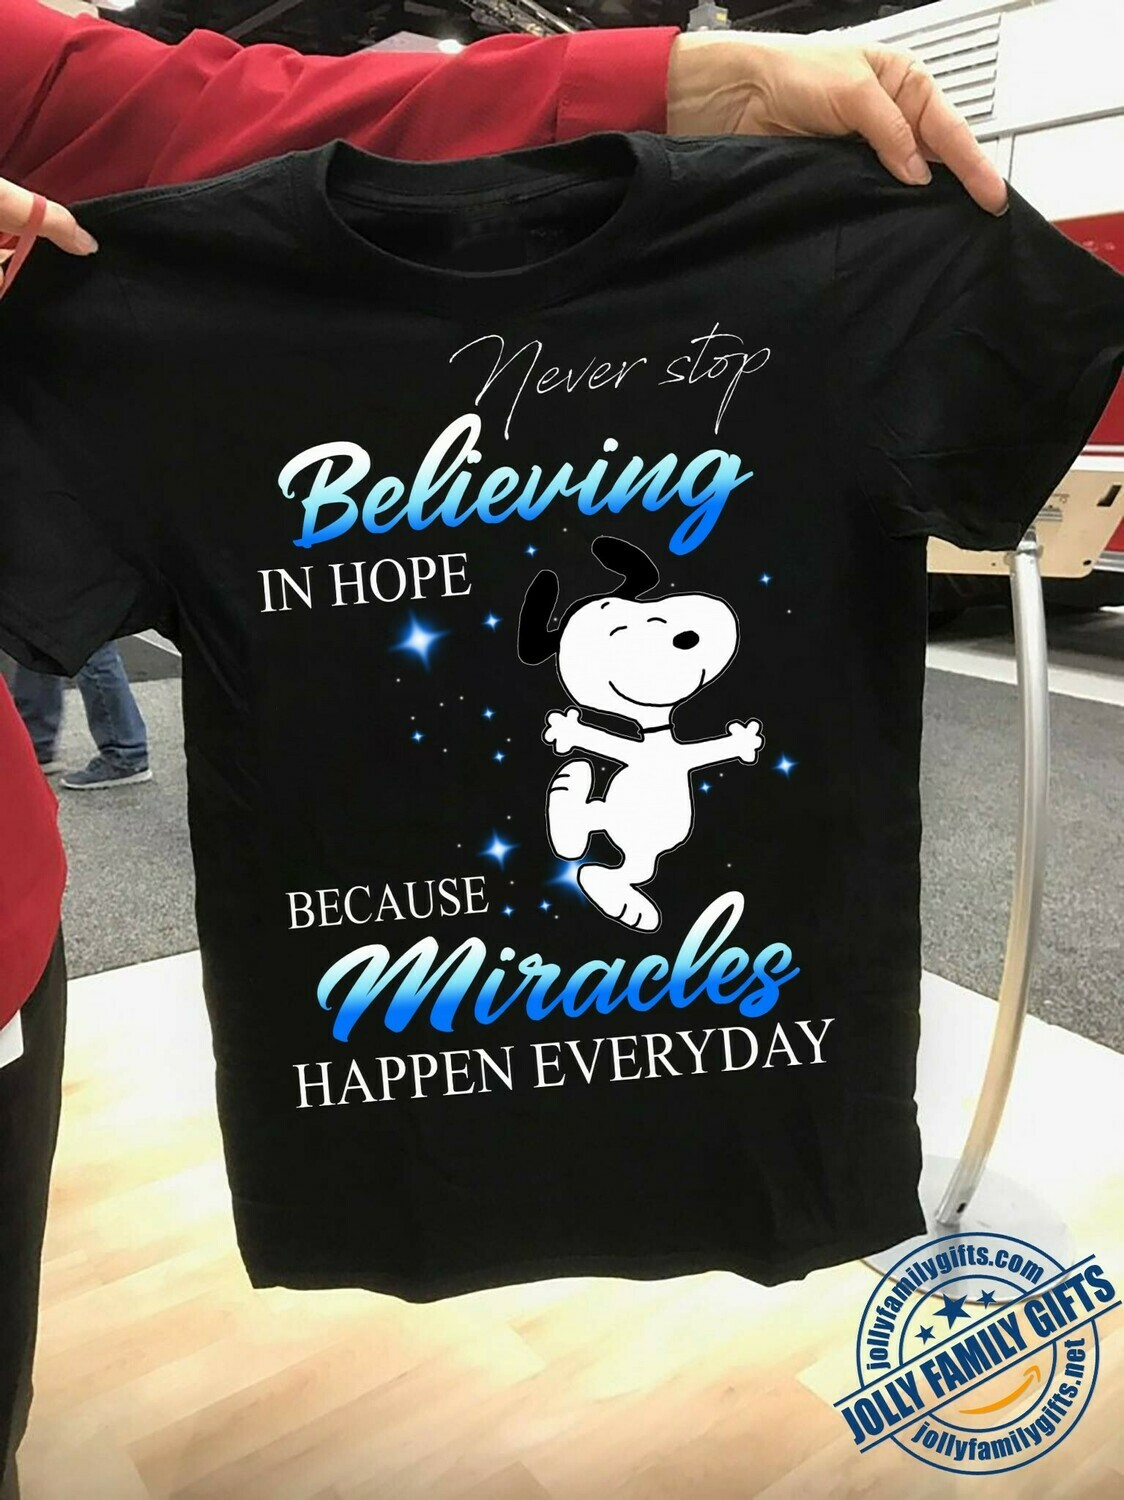 Snoopy Never stop believing in hope because miracles happen everyday  Unisex T-Shirt Hoodie Sweatshirt Sweater Plus Size for Ladies Women Men Kids Youth Gifts Tee Jolly Family Gifts